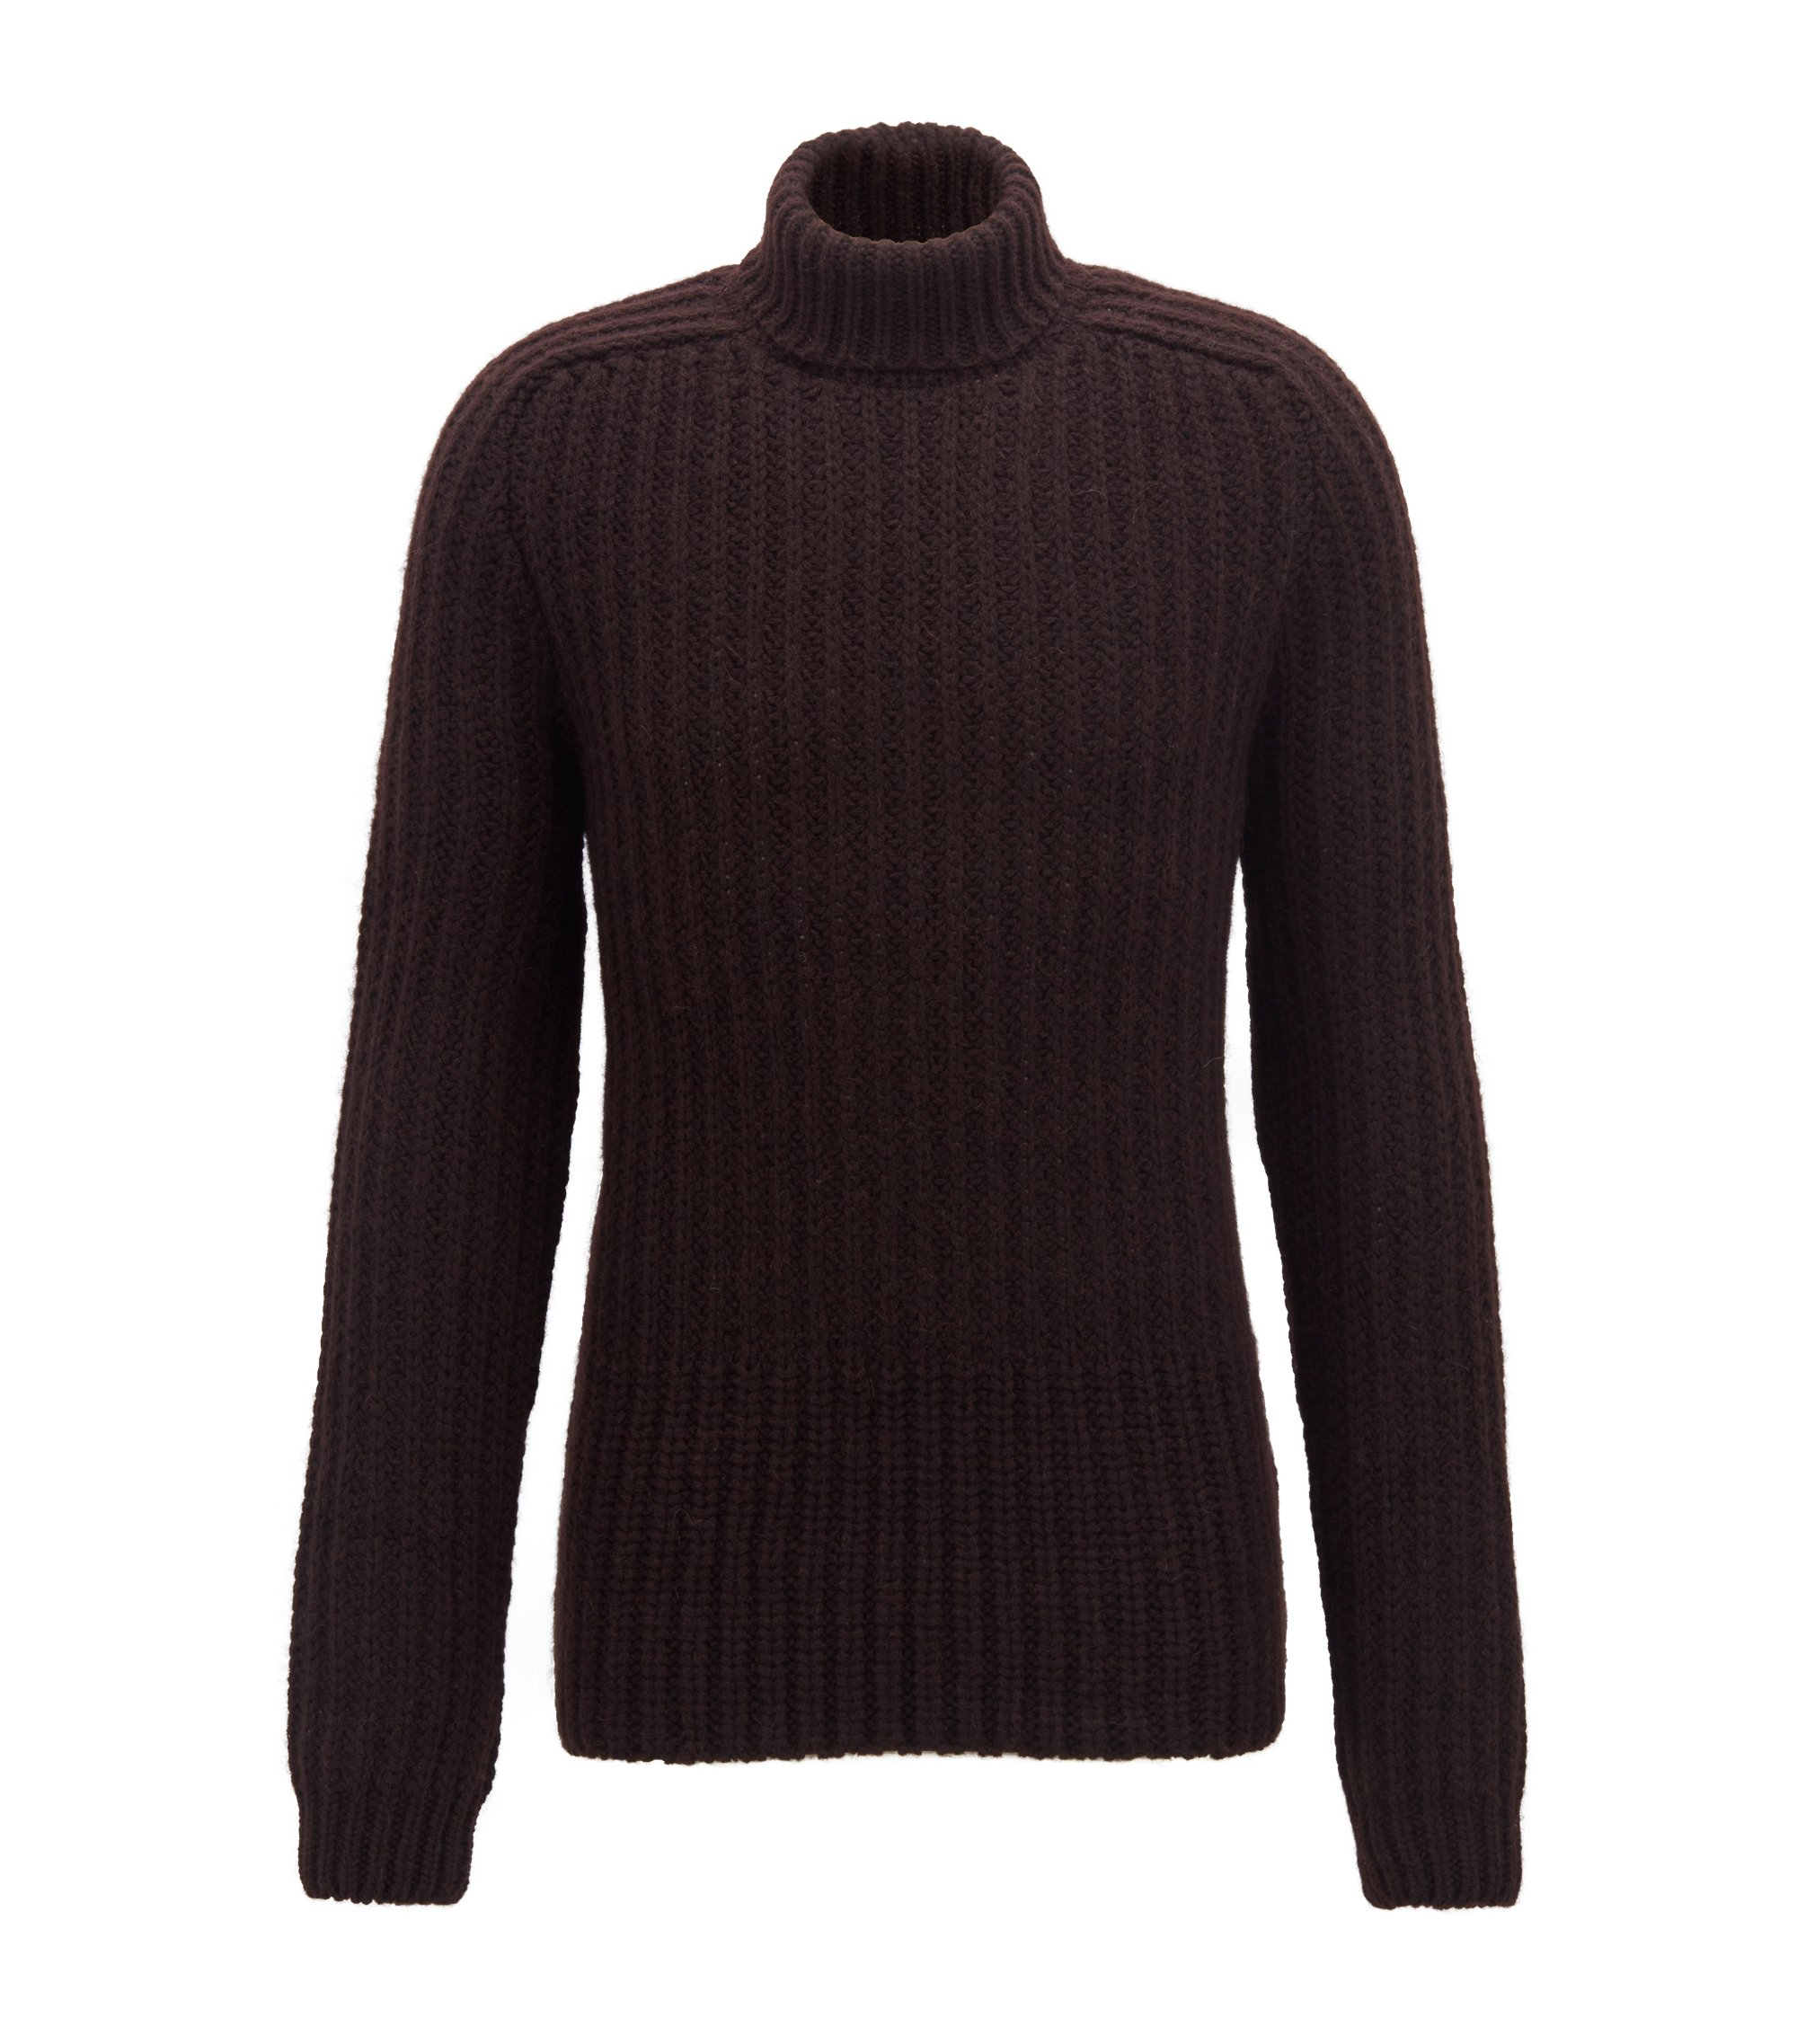 Fashion Show Capsule turtleneck sweater in chunky knit structures, Brown